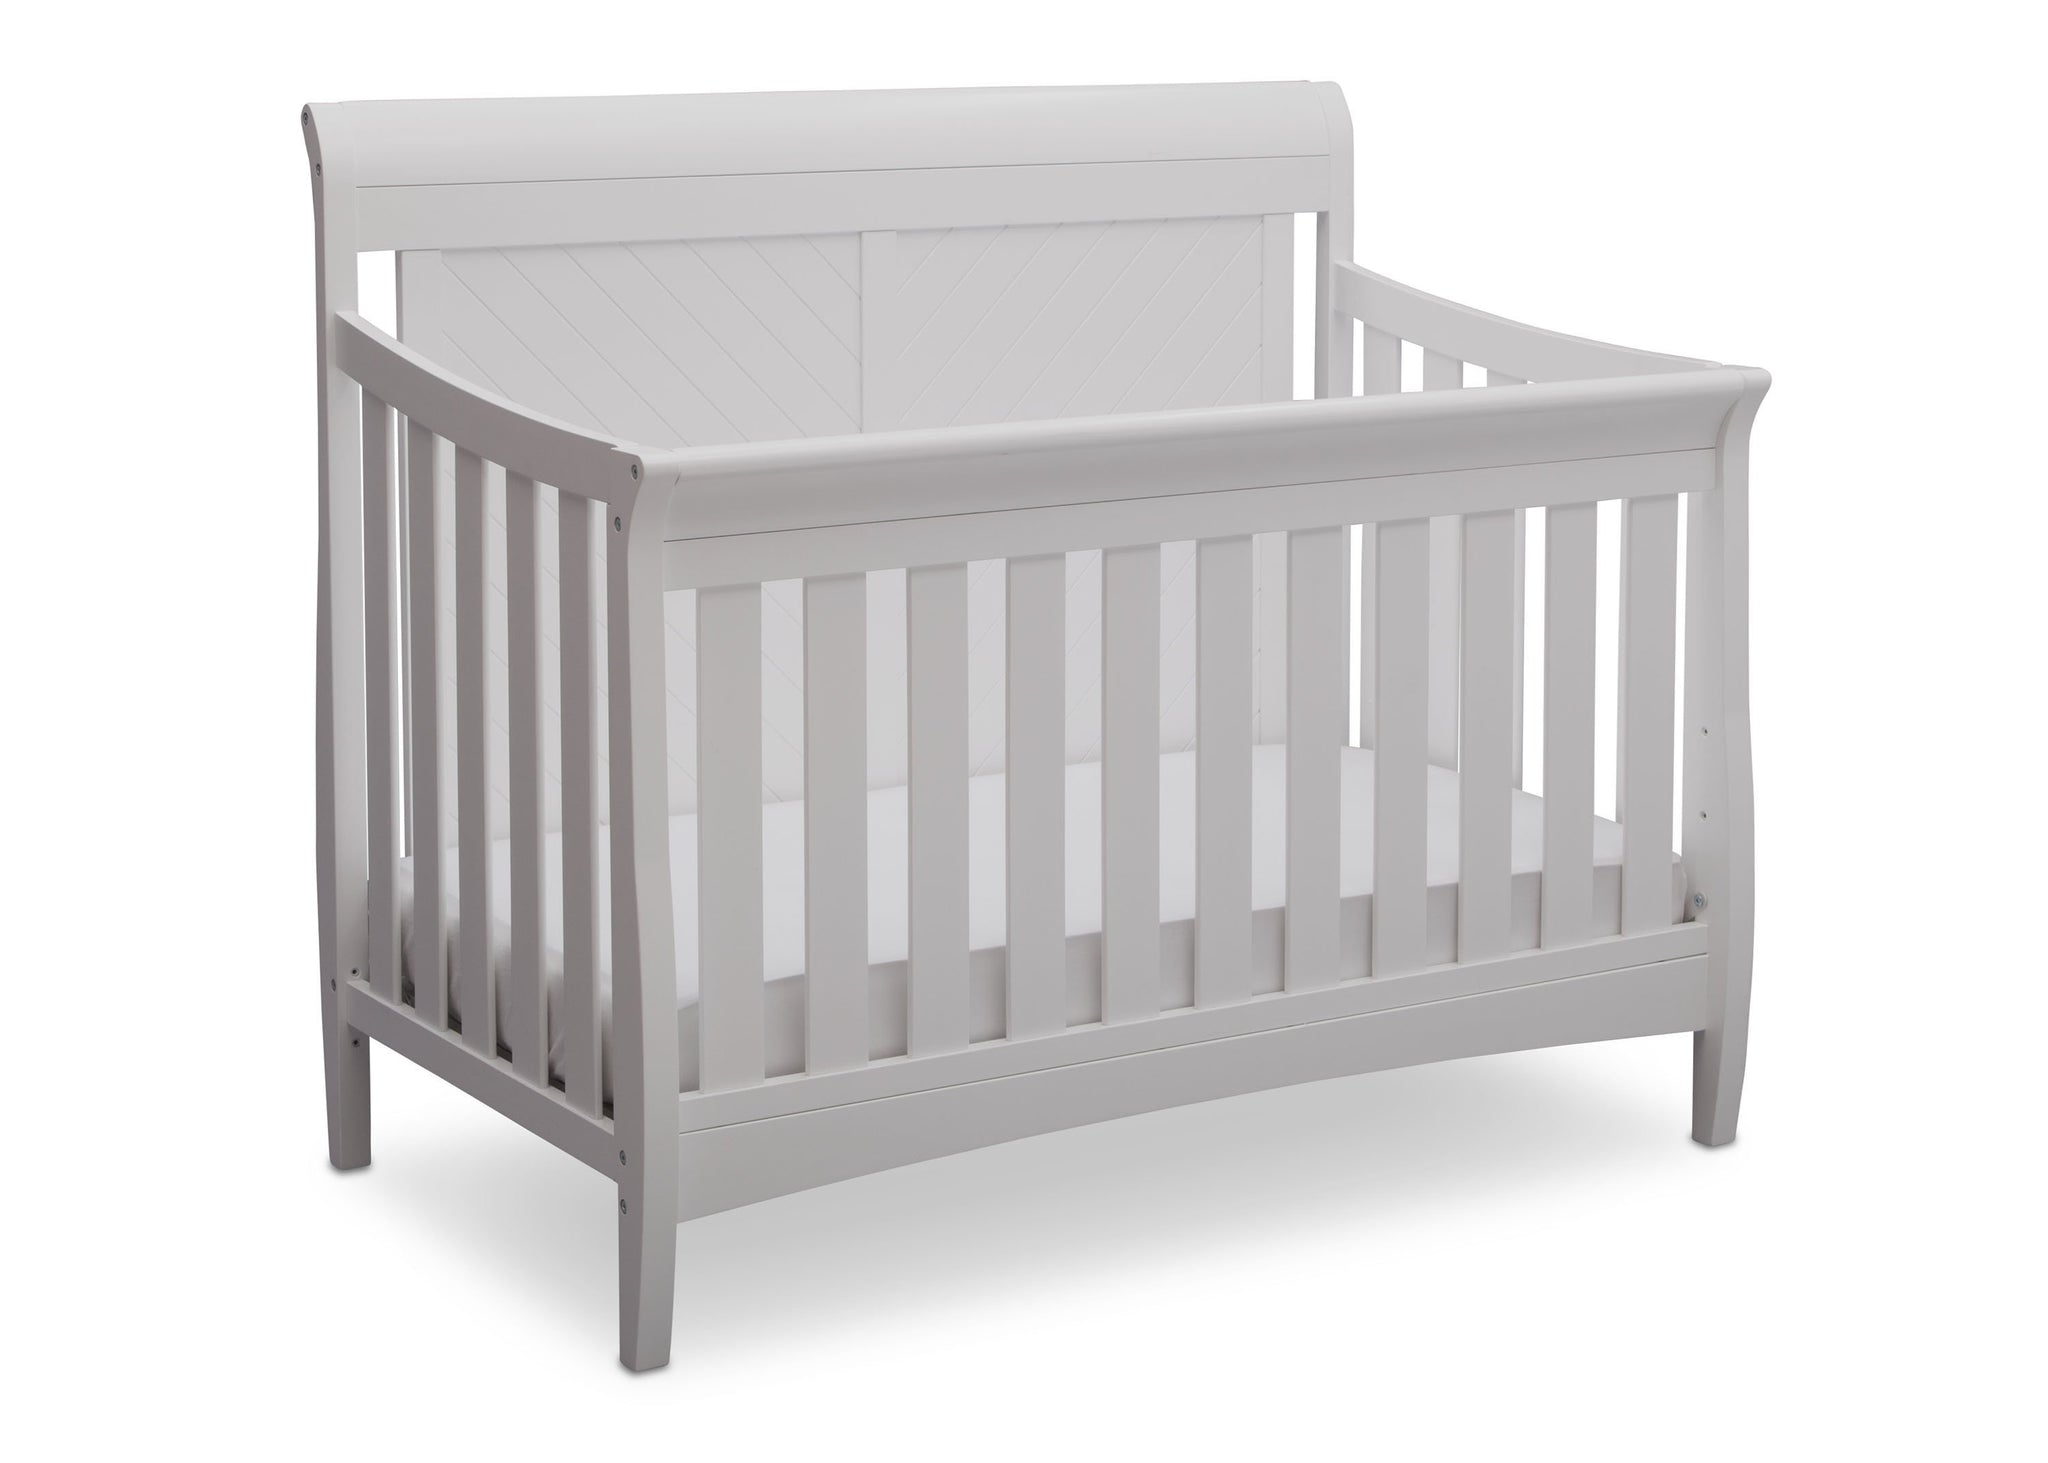 Delta Children Bianca (130) Bennington Elite Sleigh 4-in-1 Convertible Crib (550650), Right Angle, b3b